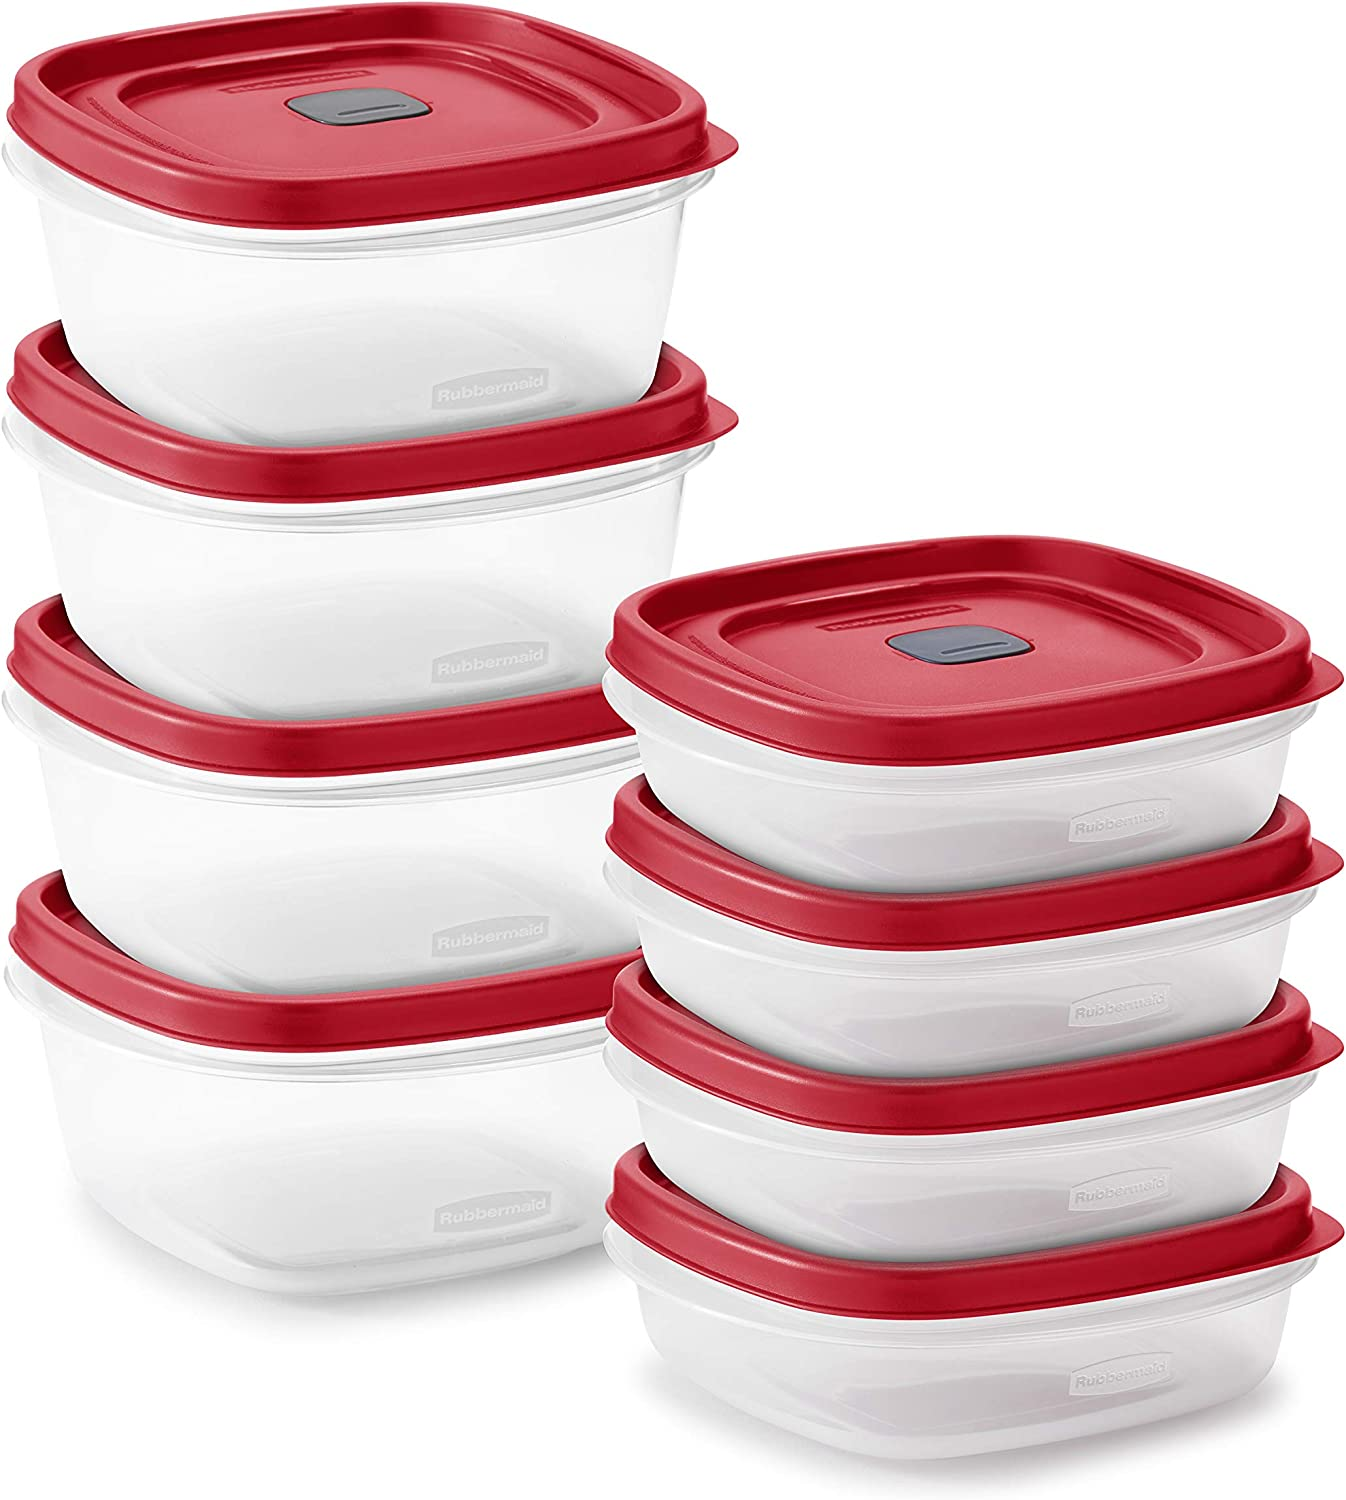 Rubbermaid 2108392 Easy Find Vented Lids Food Storage, Set of 8 (16 Pieces Total) Plastic Meal Prep Containers, 8-Pack, Racer Red